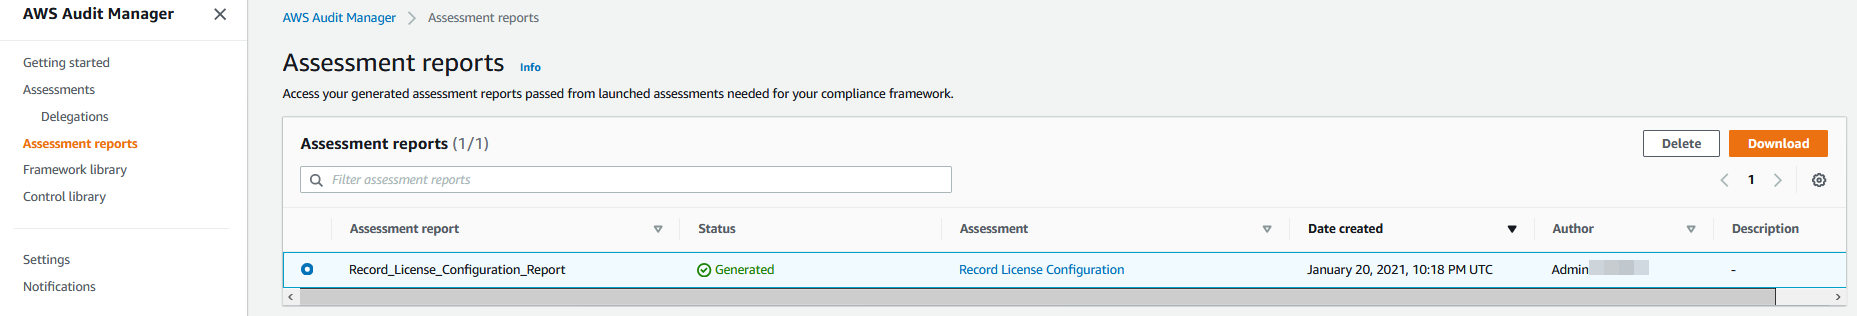 ALT TEXT: The Record_License_Configuration_Report is selected. It has a status of Generated.